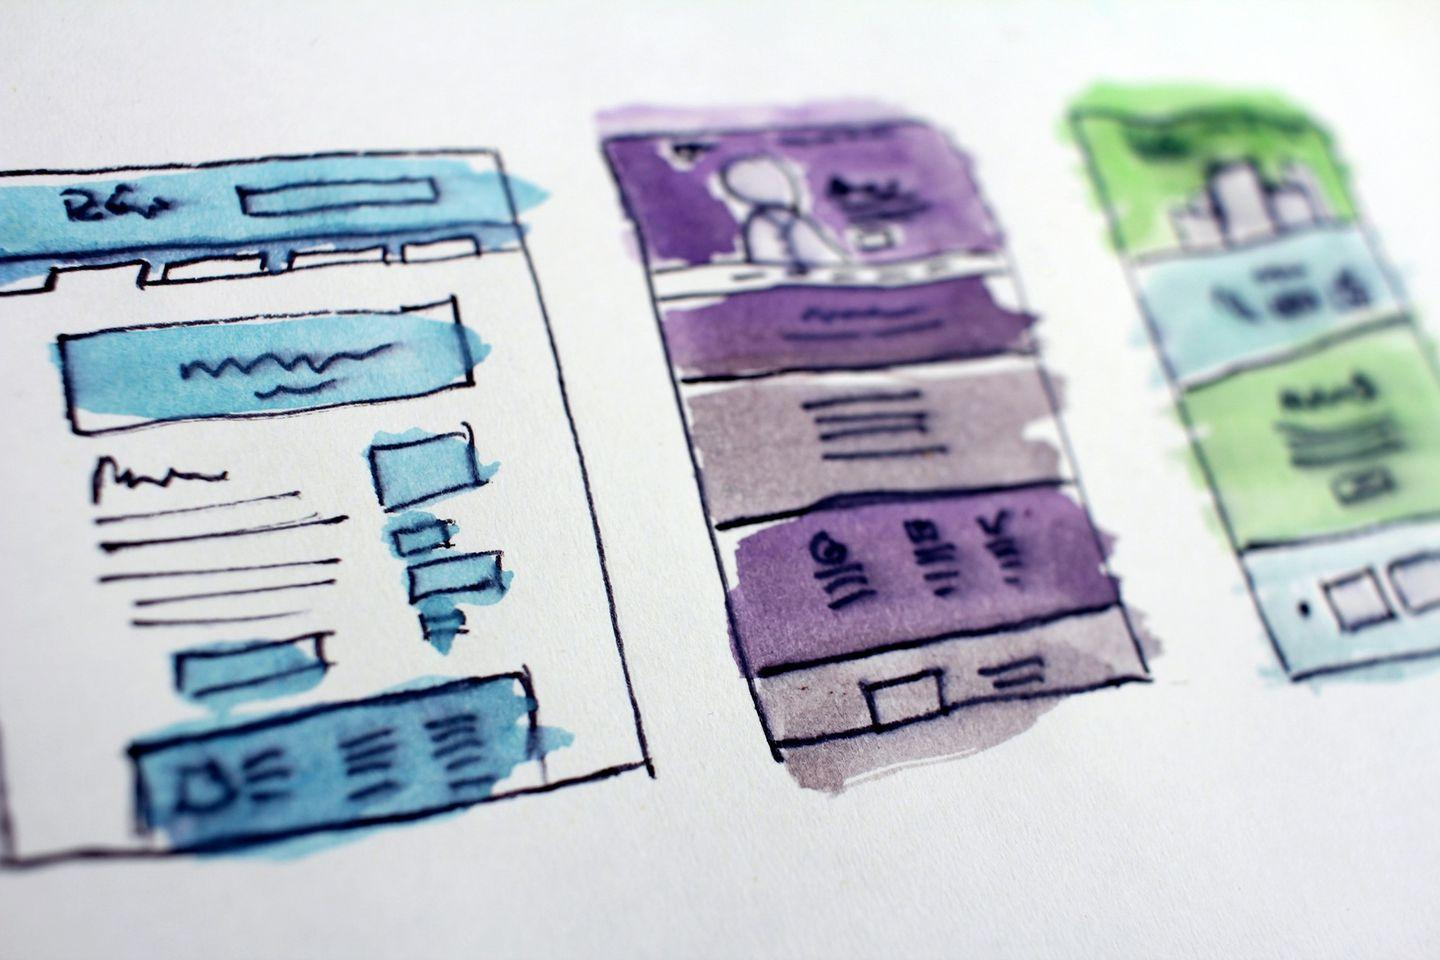 A quick sketch about website structure on a paper